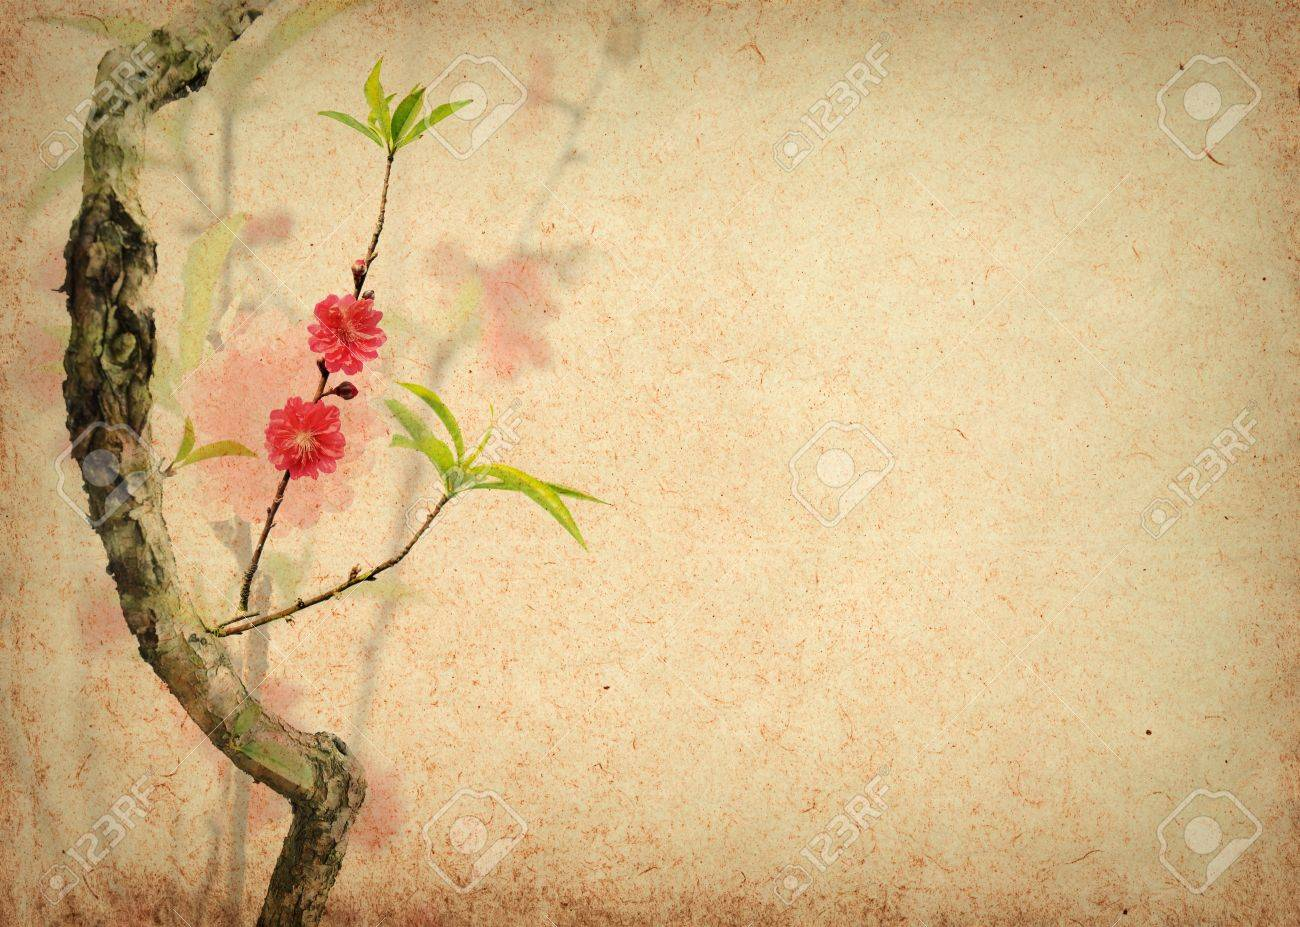 Cherry Blossoms Stock Photo, Picture And Royalty Free Image. Image ...